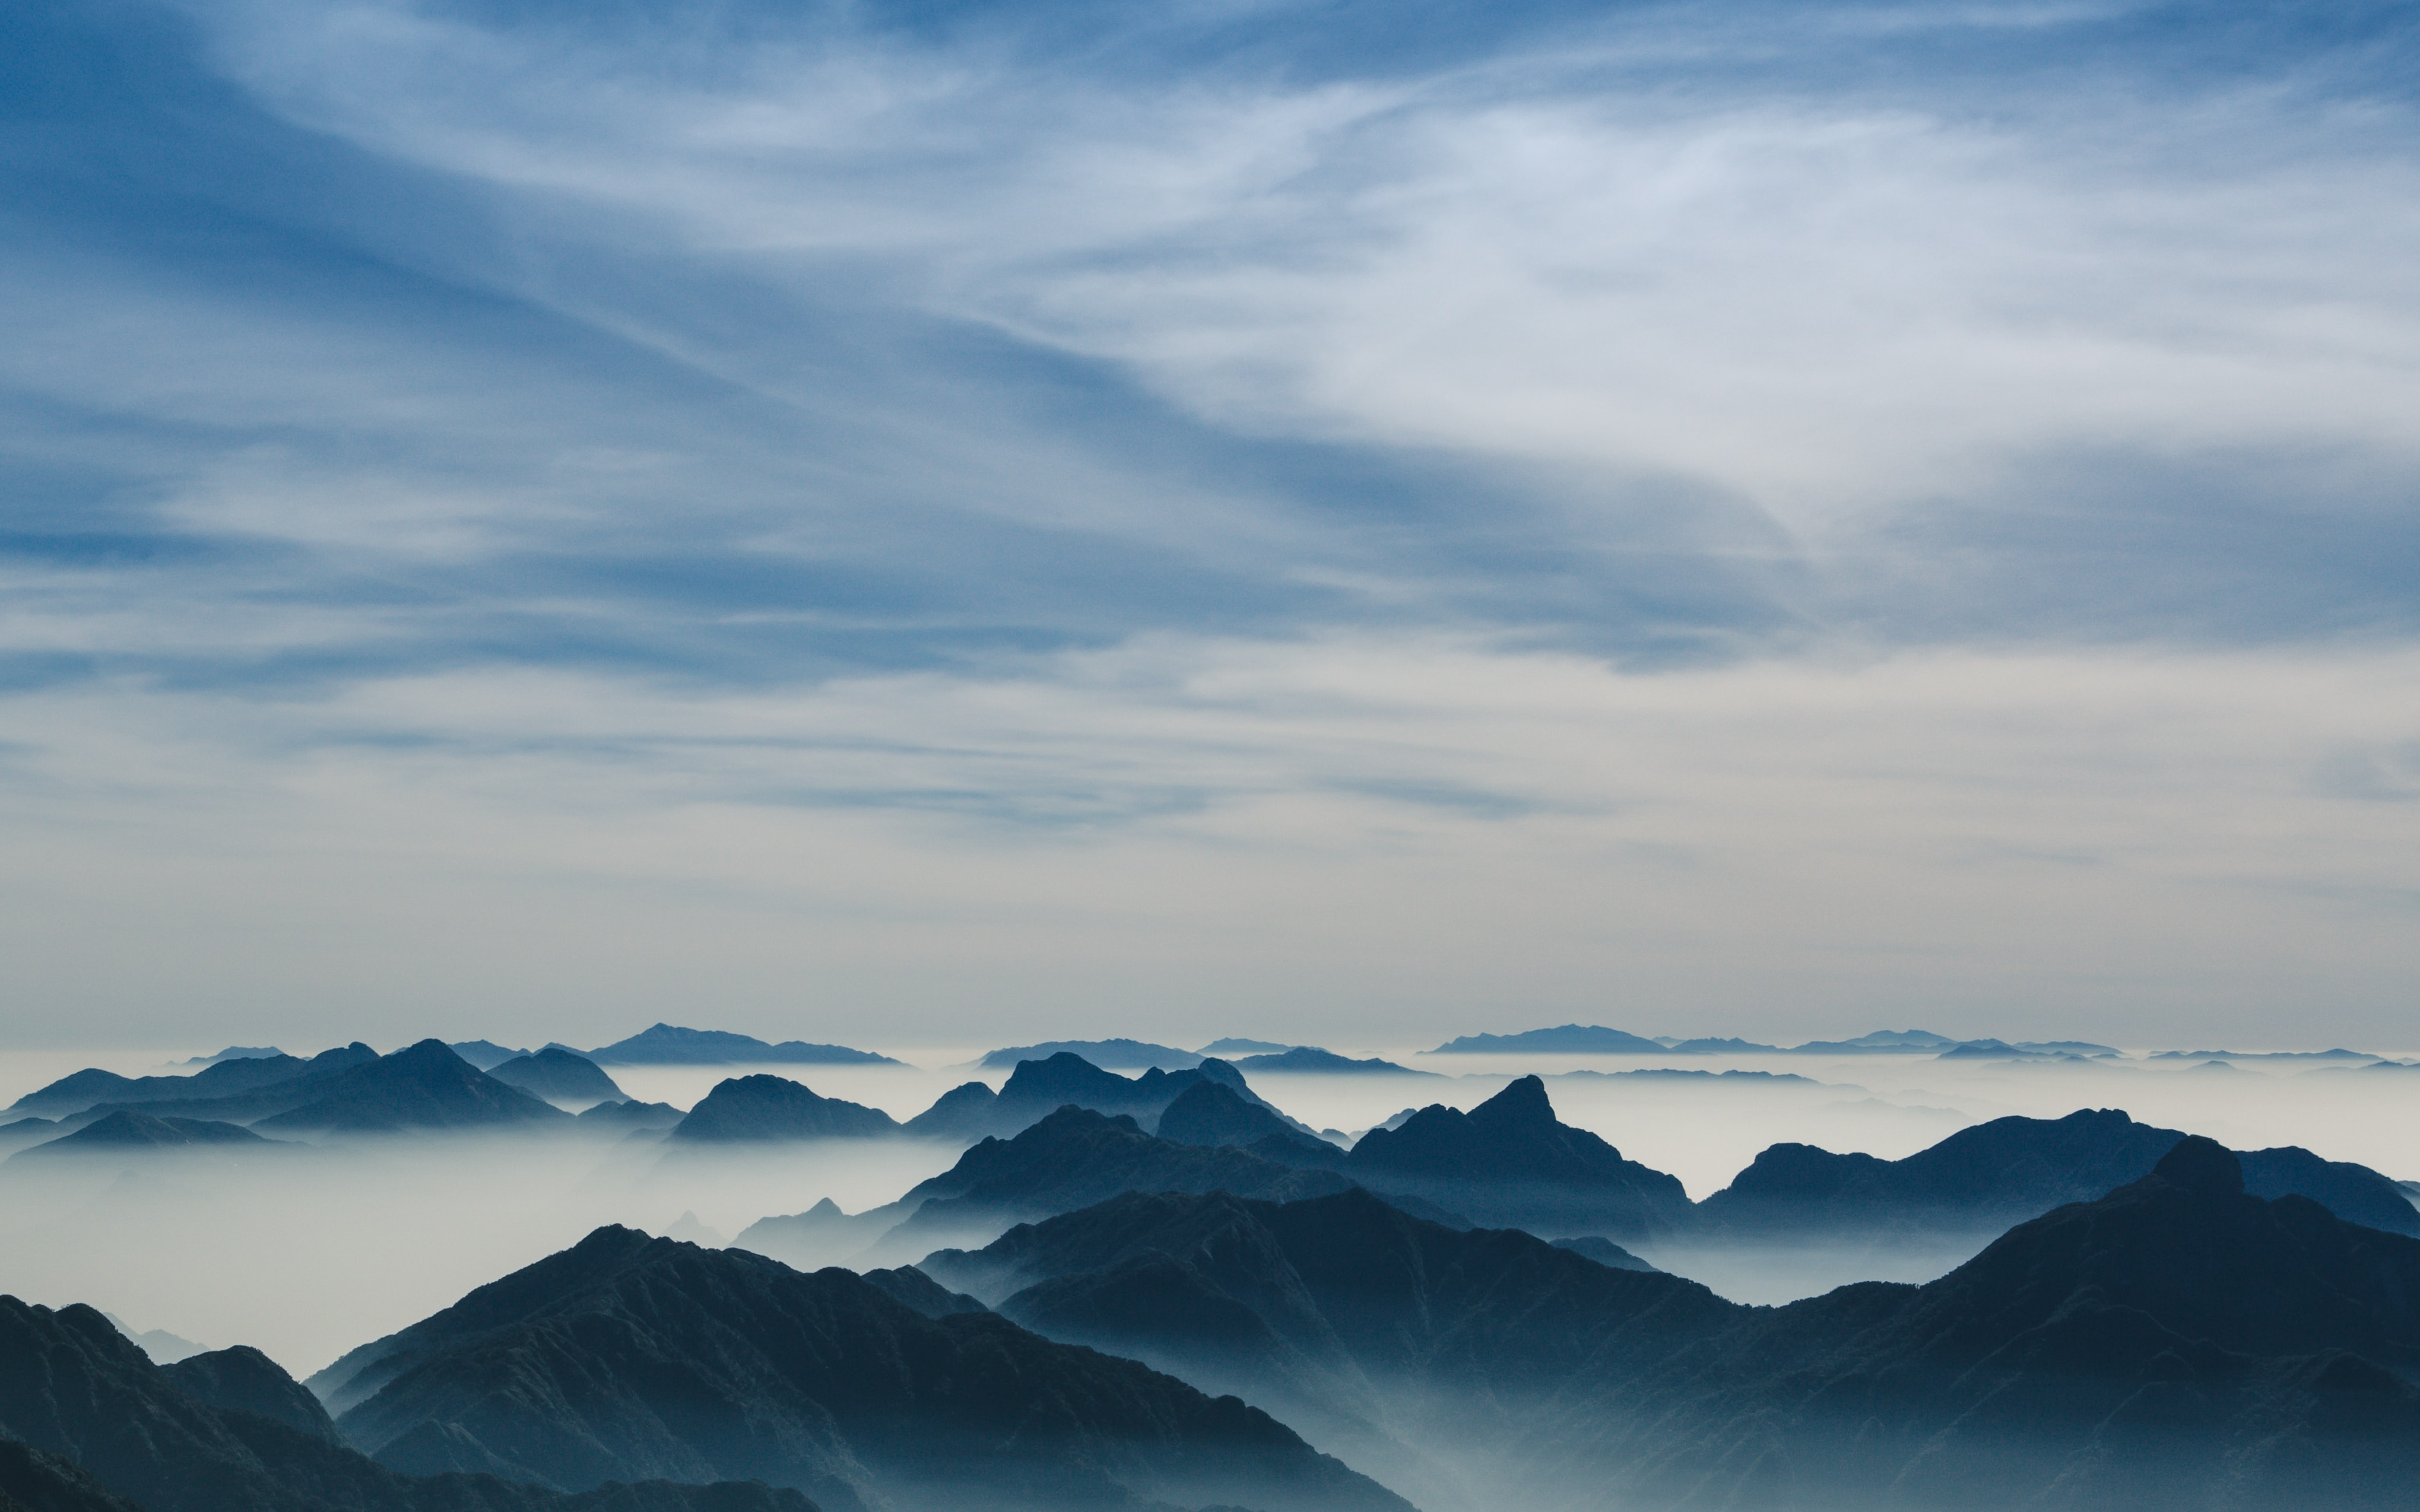 mountains under cloudy sky